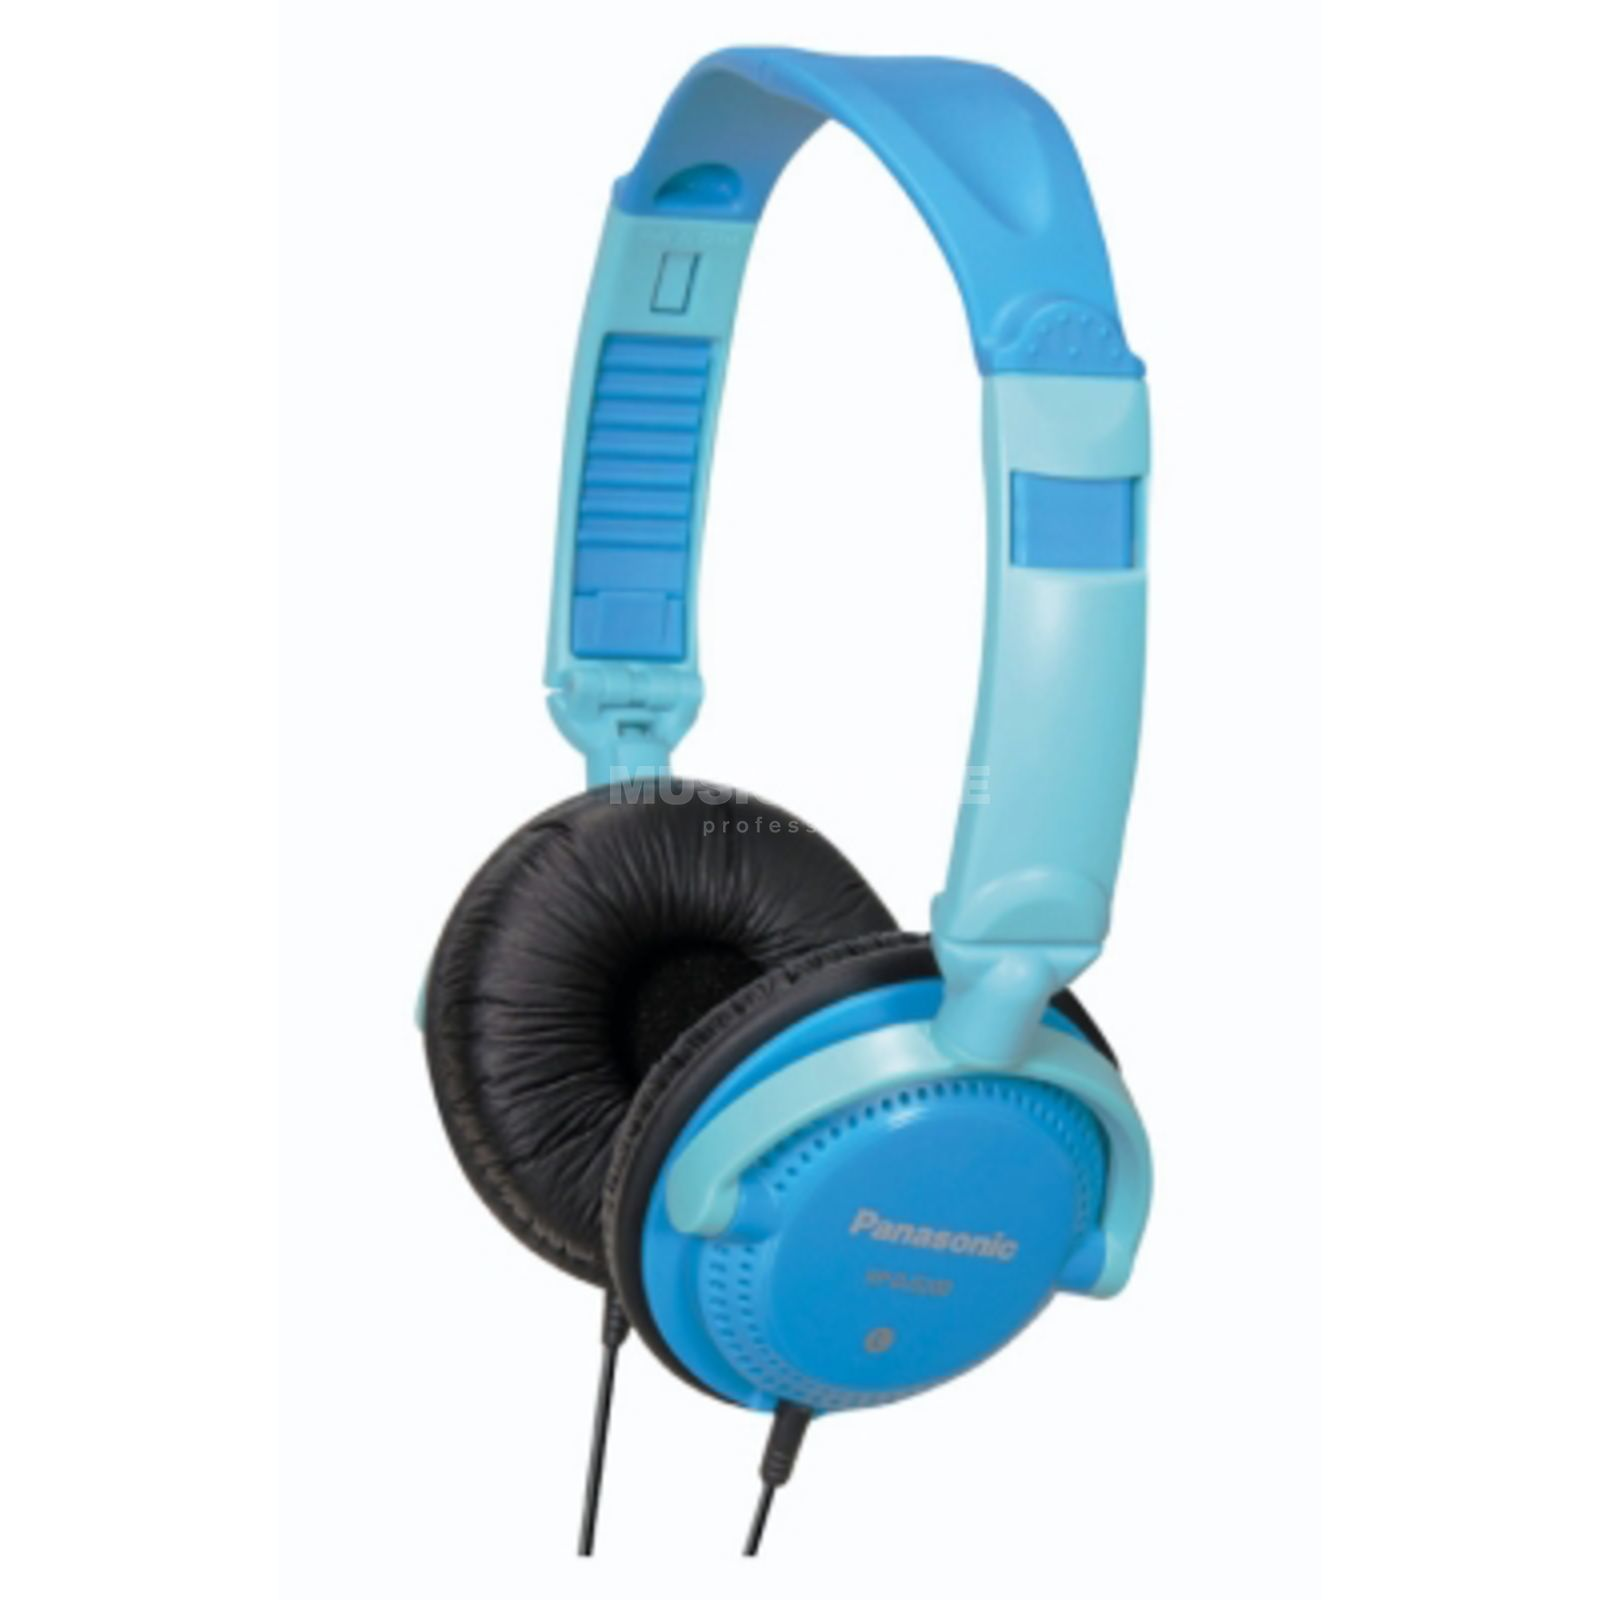 Panasonic RP-DJS200E-A Blue Street DJ-Headphones Product Image